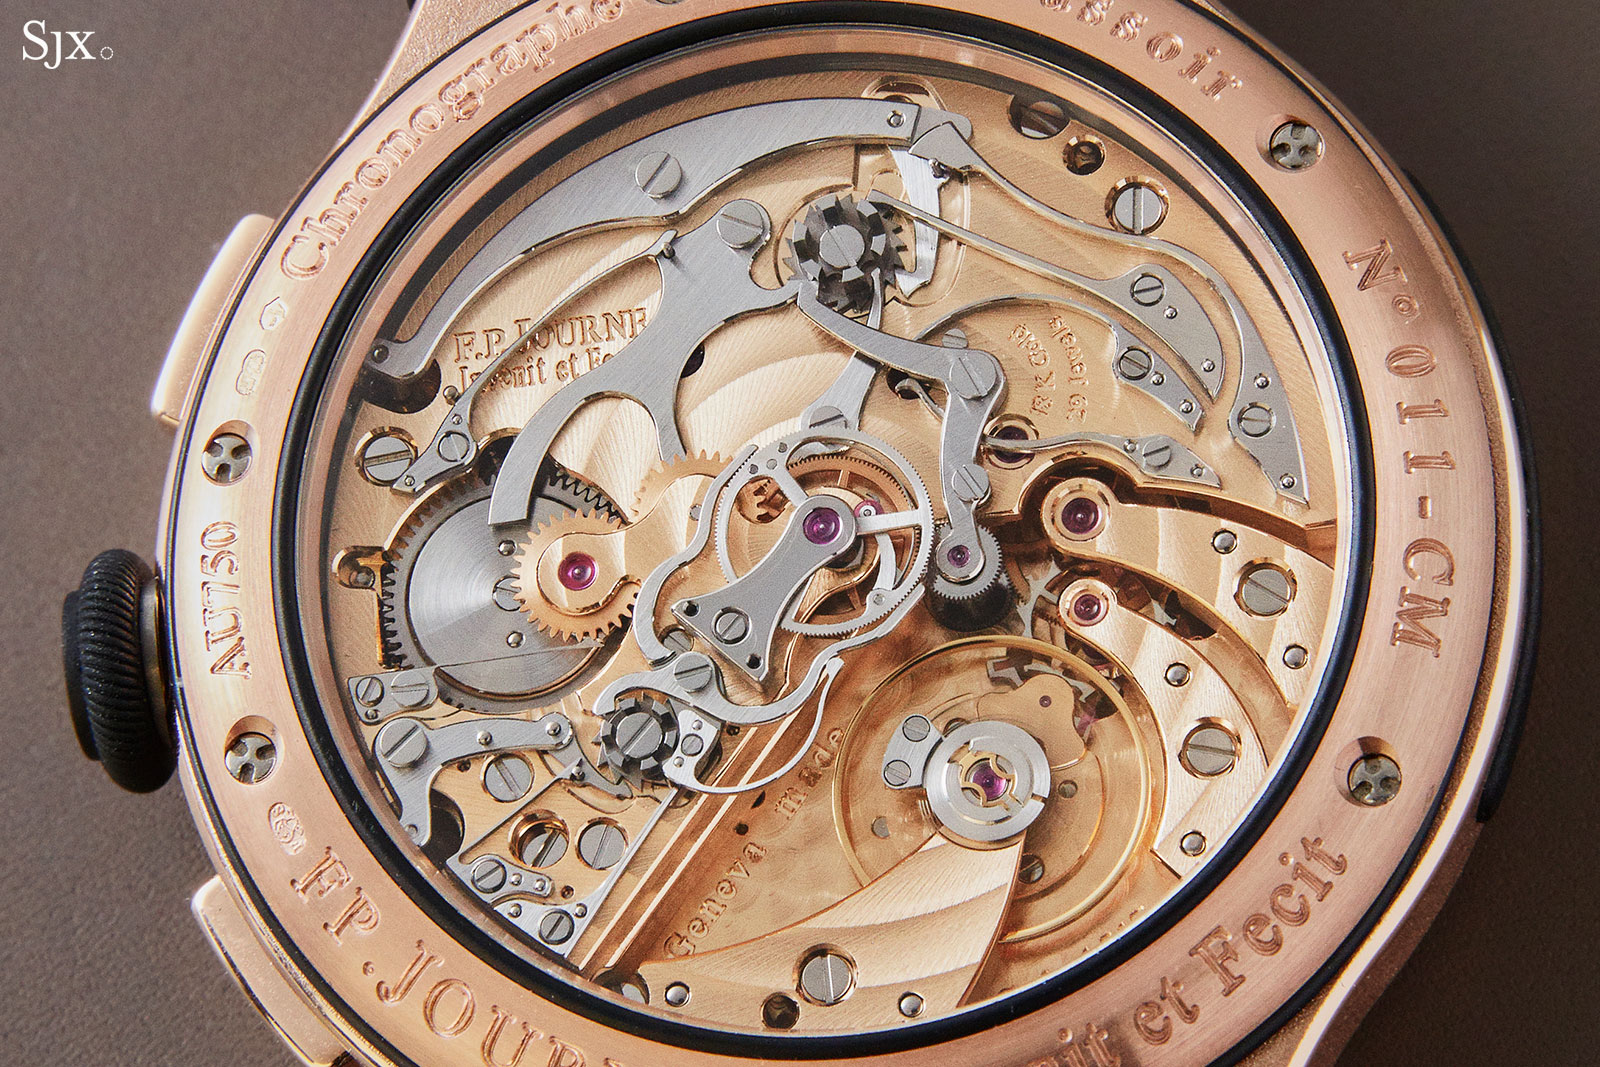 FP Journe Chronographe Monopoussoir Rattrapante rose gold 4